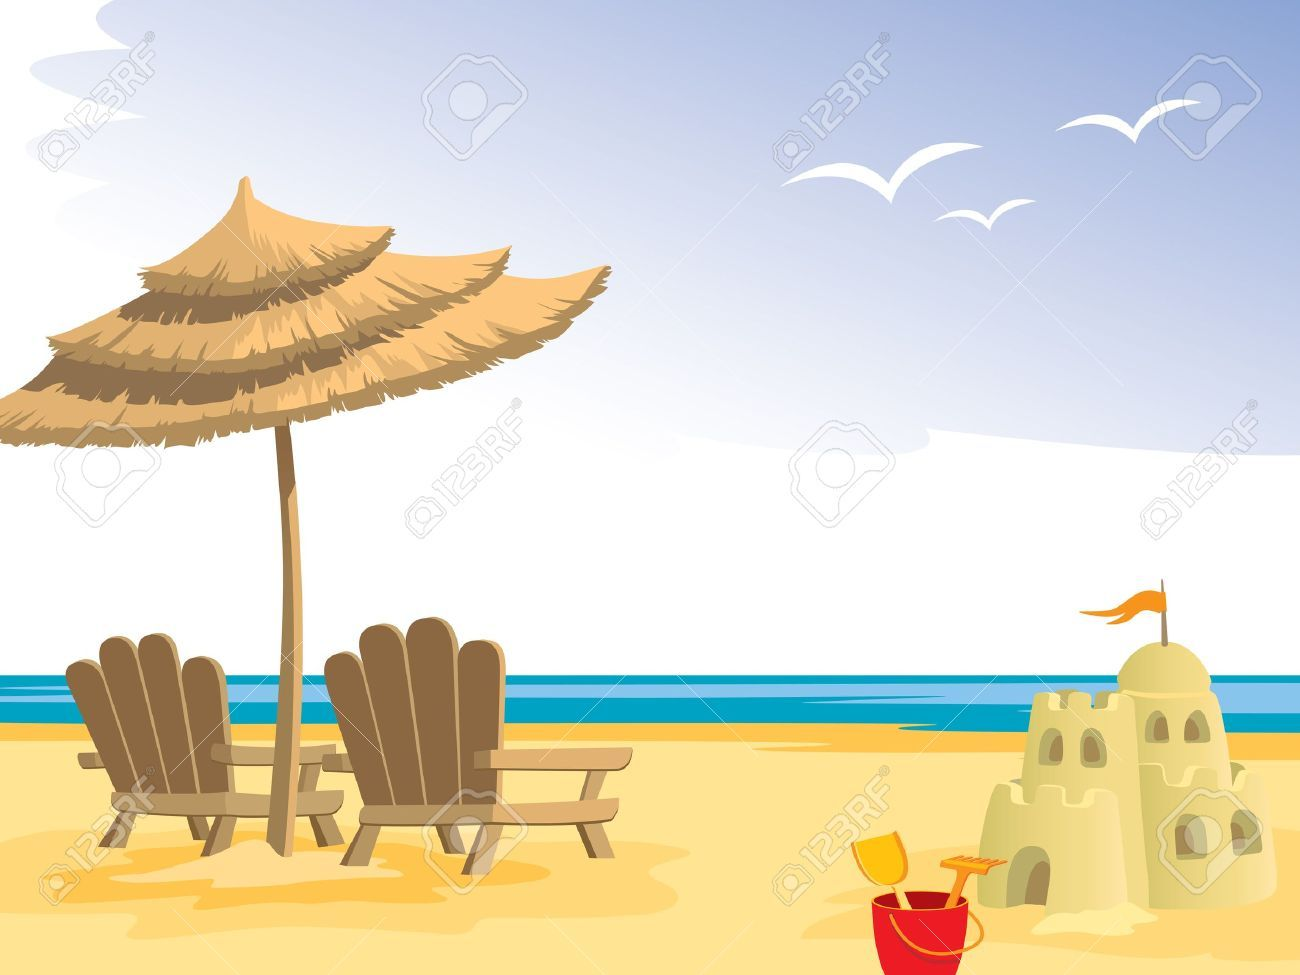 Beach chair with umbrella painting - Find This Pin And More On Paintings Summer Beach Chairs Umbrella